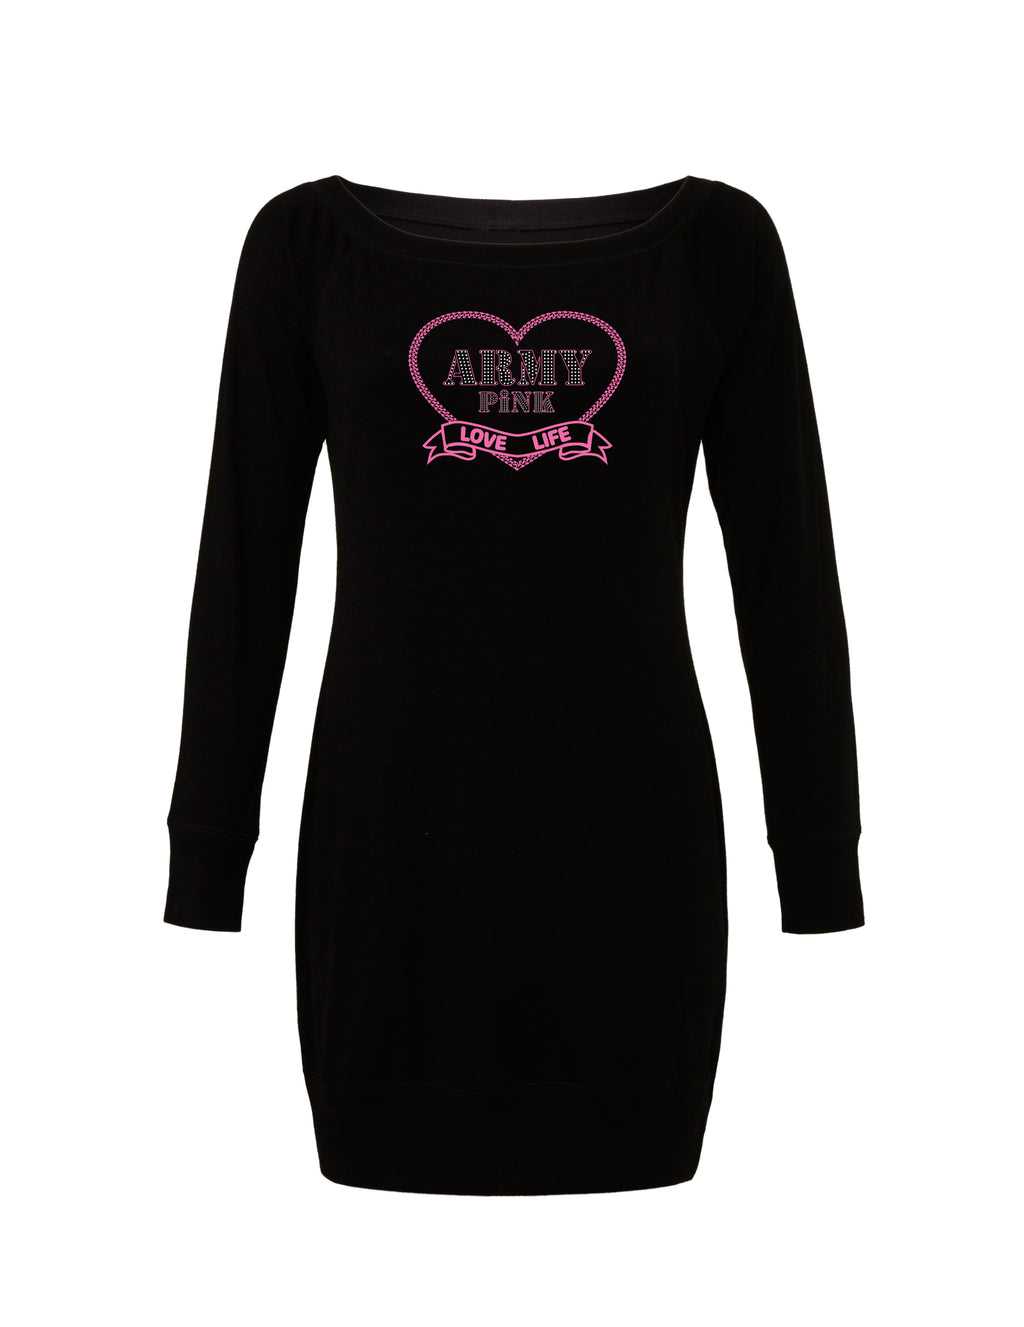 Black Lightweight Sweater Dress with pink love life graphic for 55.00 at ARMY PINK